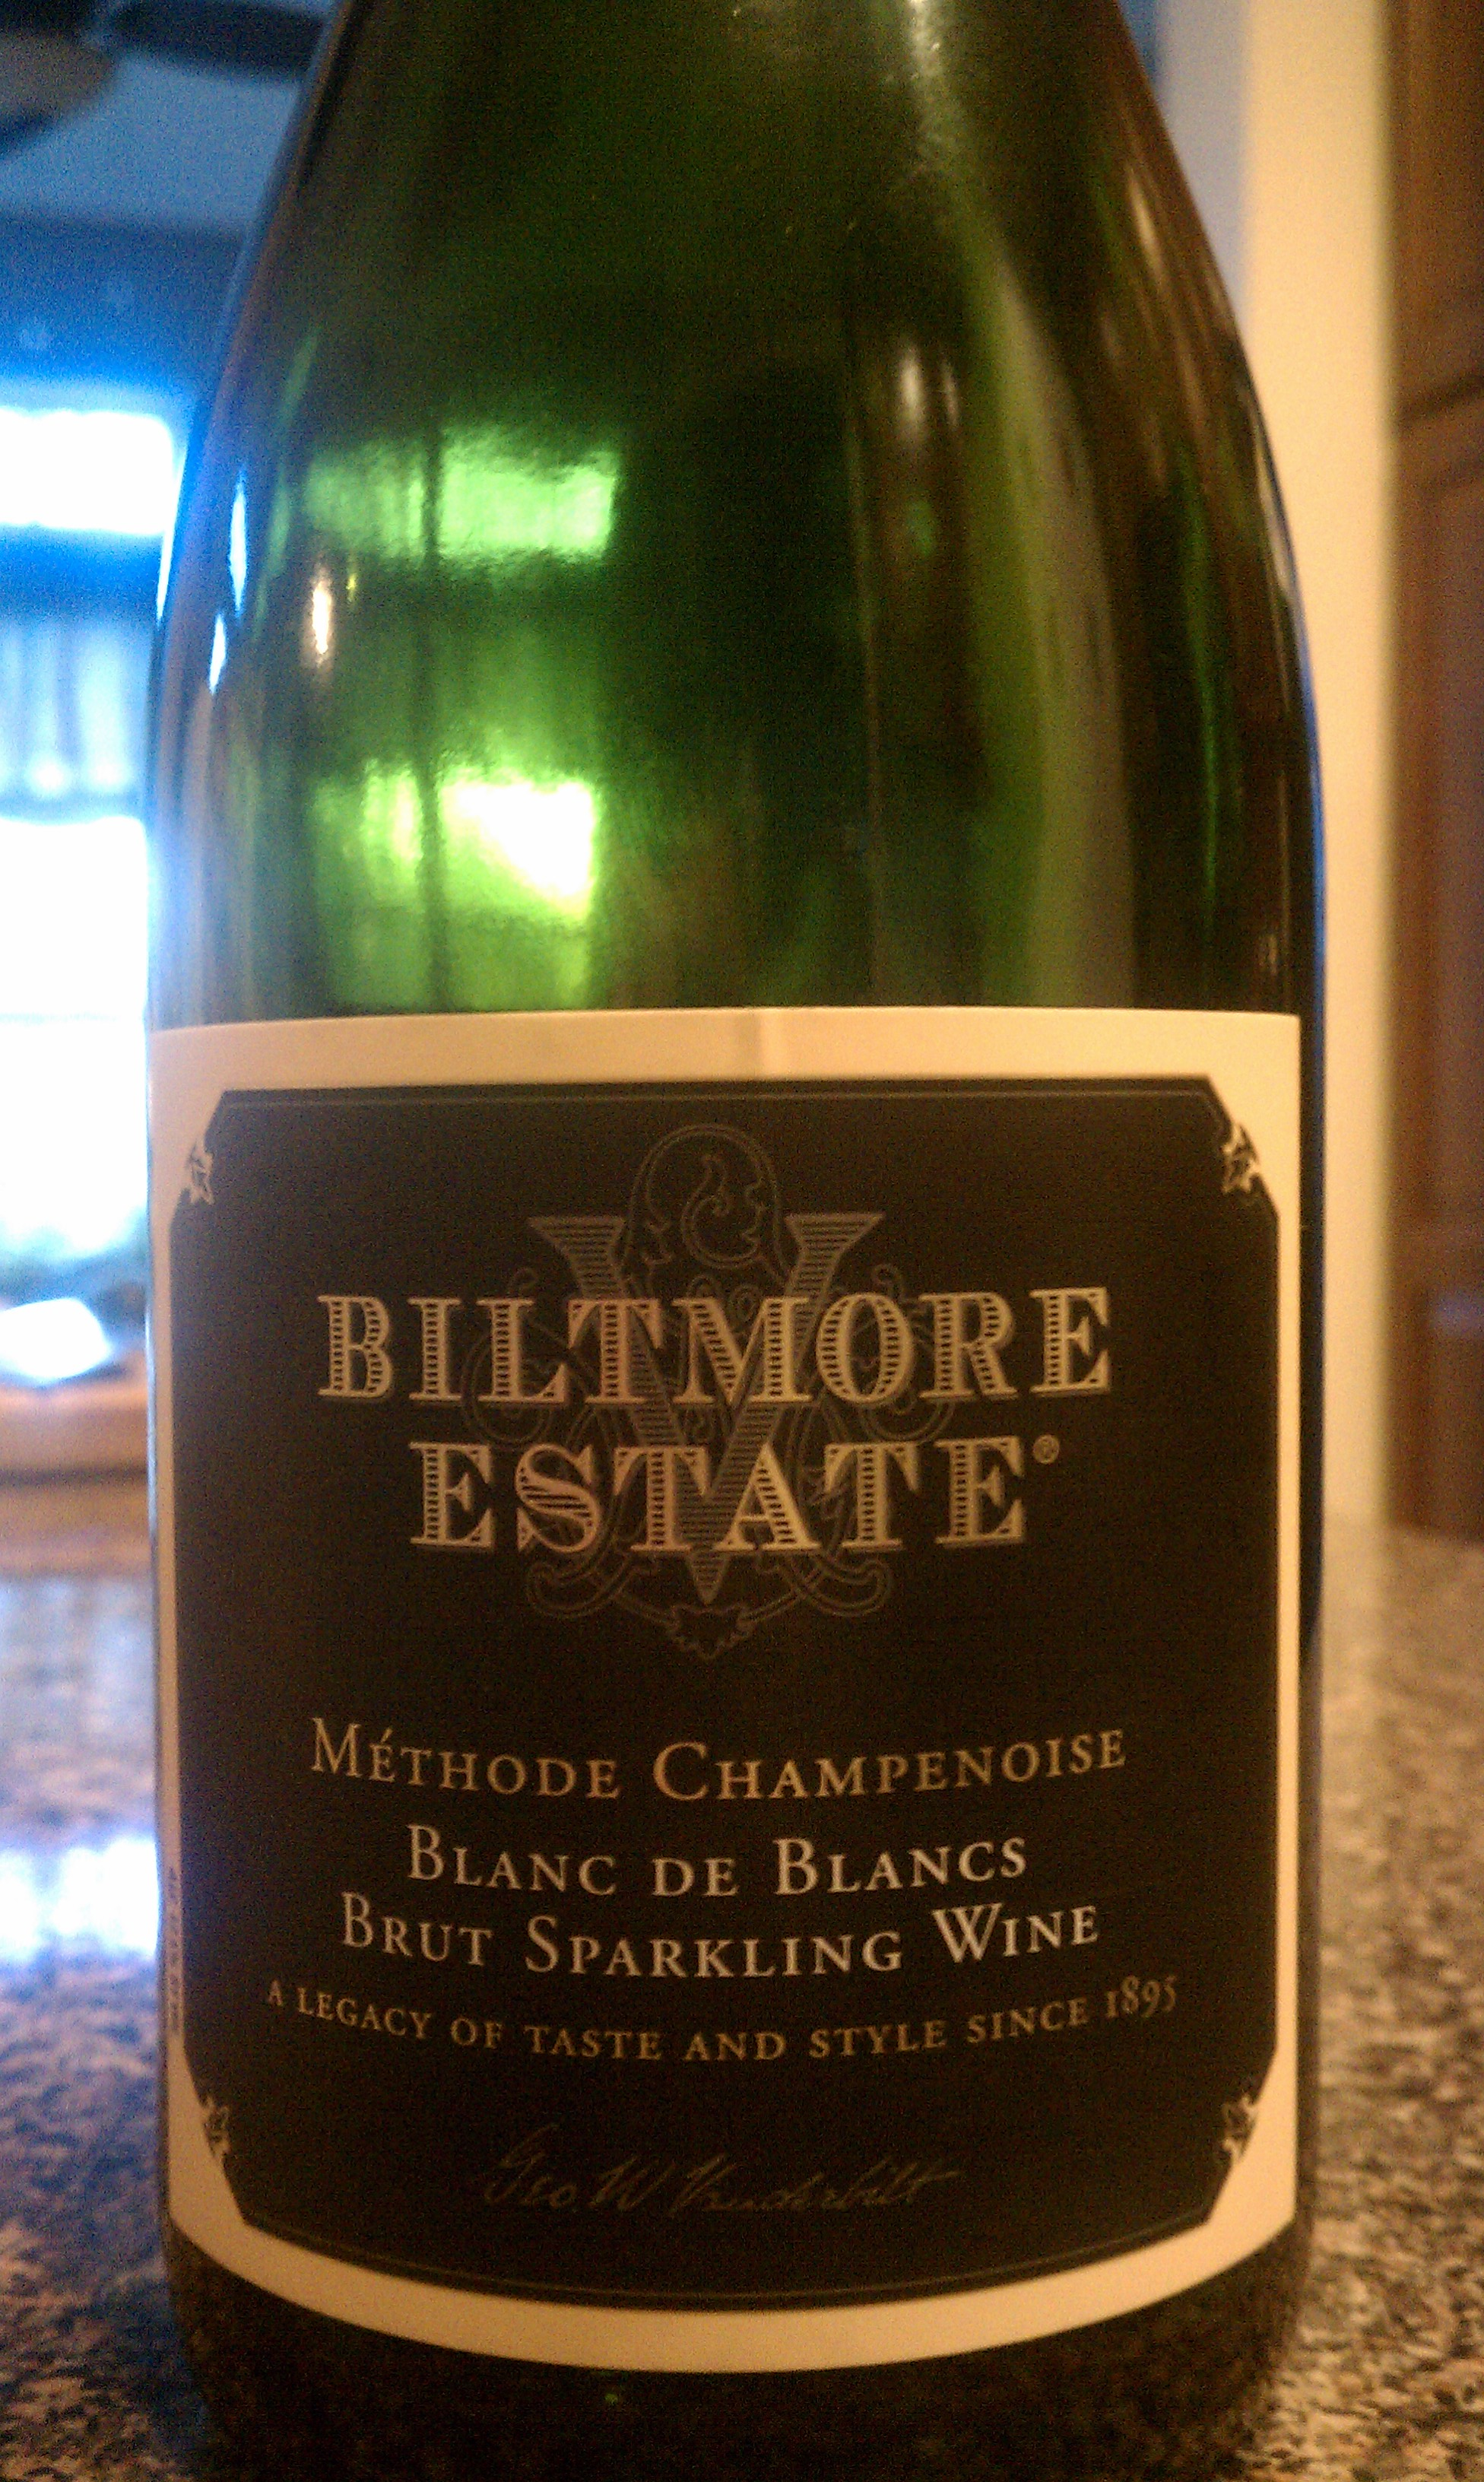 2007 Biltmore Estate Blanc de Blancs Methode Chamepnoise Brut